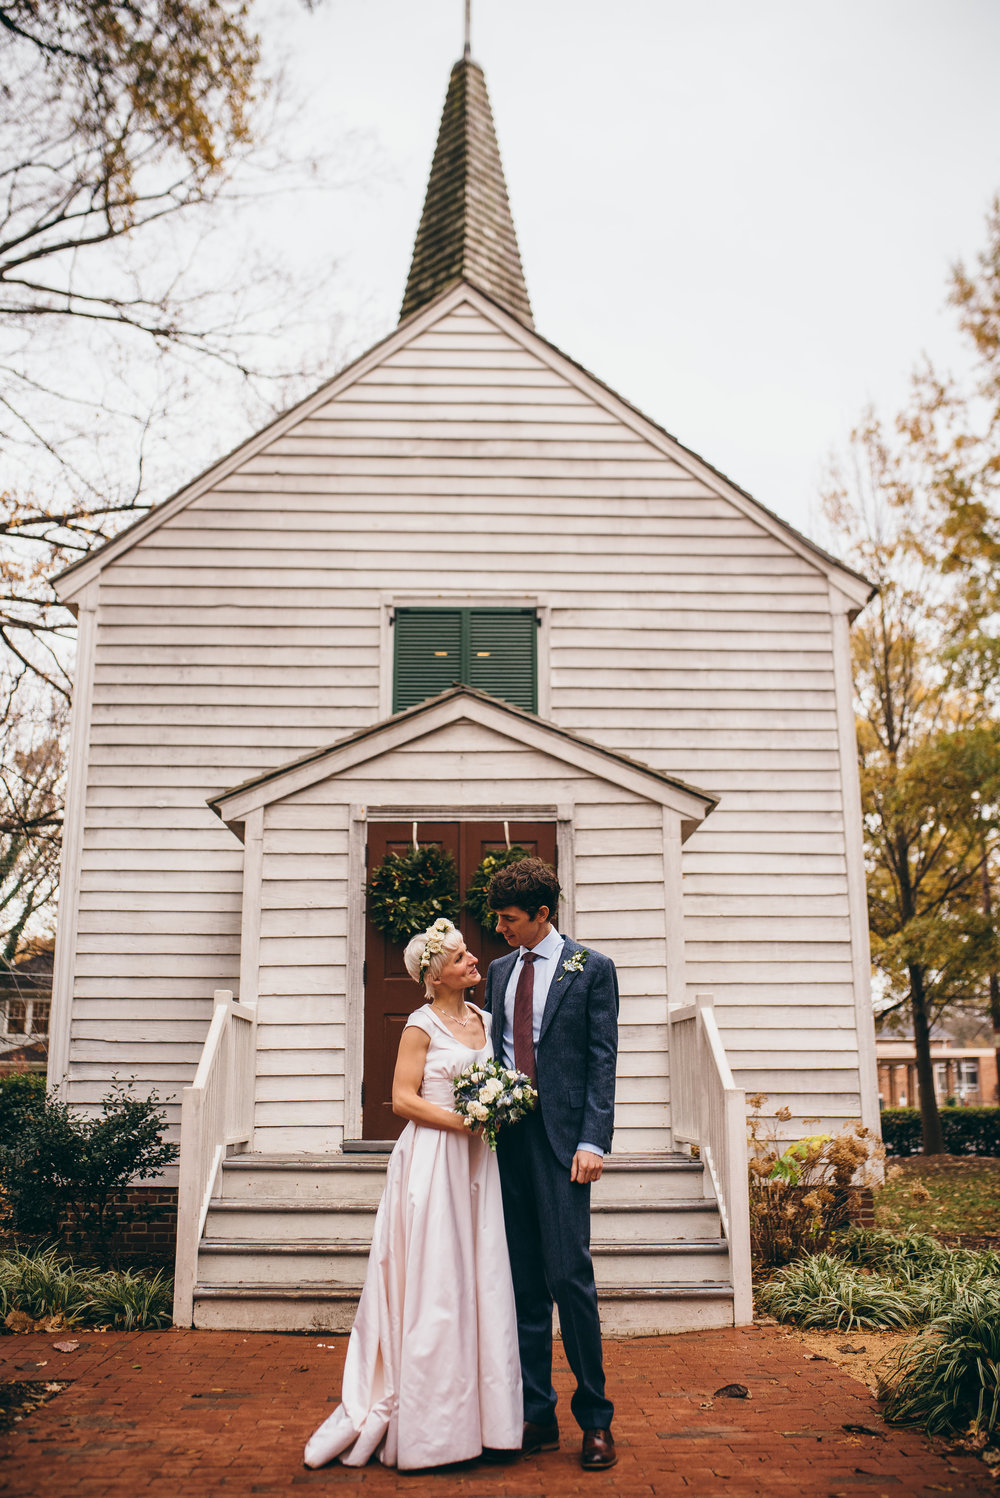 raleigh wedding photographer - north carolina wedding photographer - downtown raleigh wedding photographer